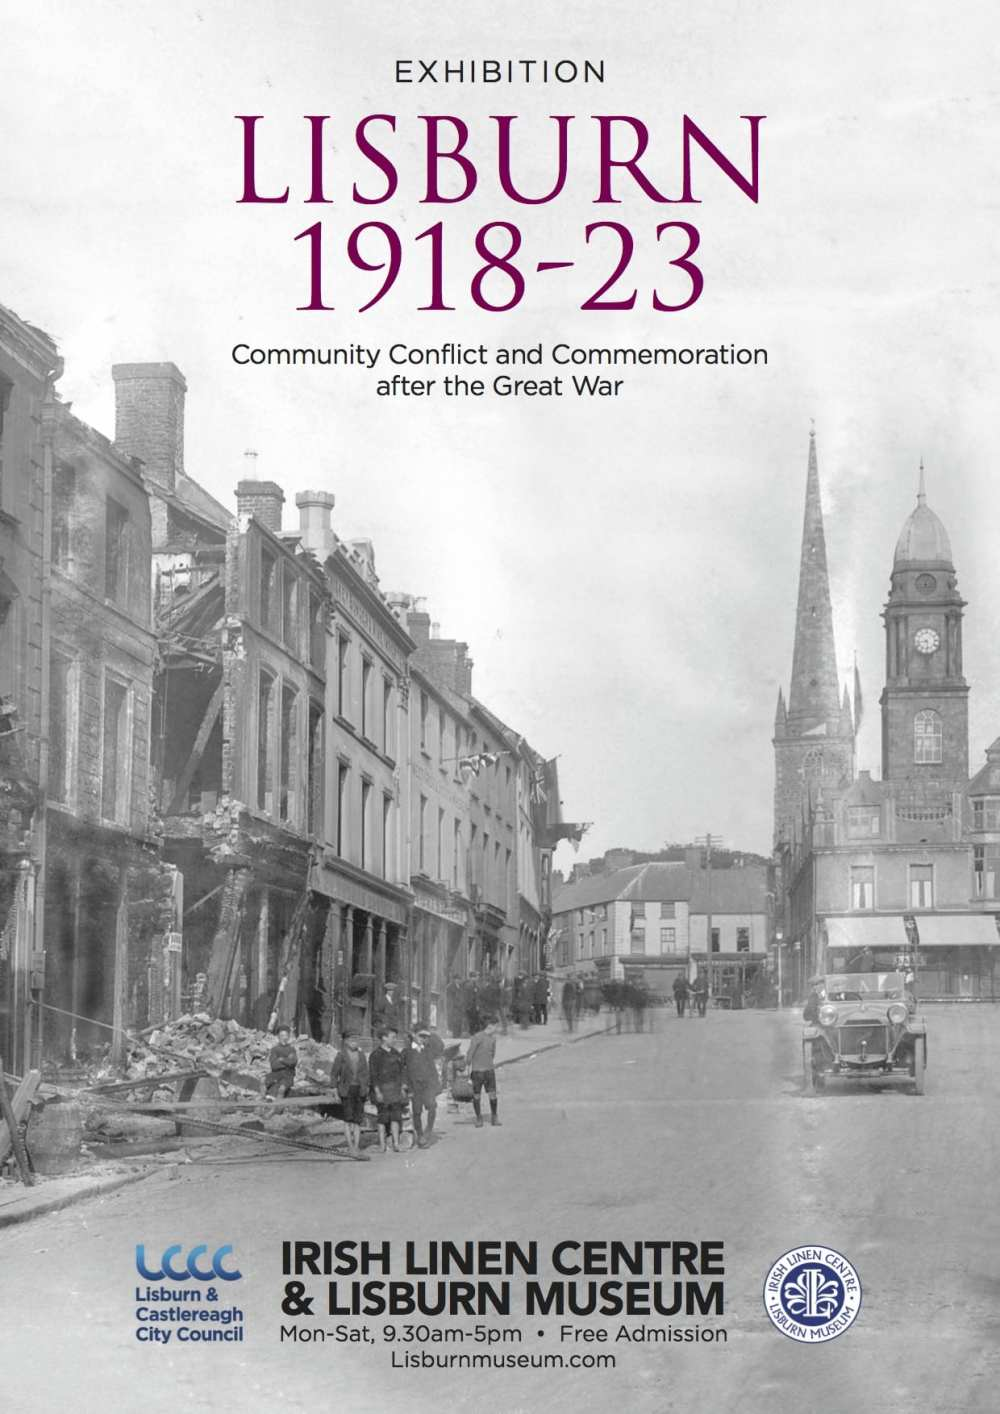 Lisburn-1918-23-Community-Conflict-and-Commemoration-after-the-Great-War-exhibition-irish-linen-centre-lisburn-museum